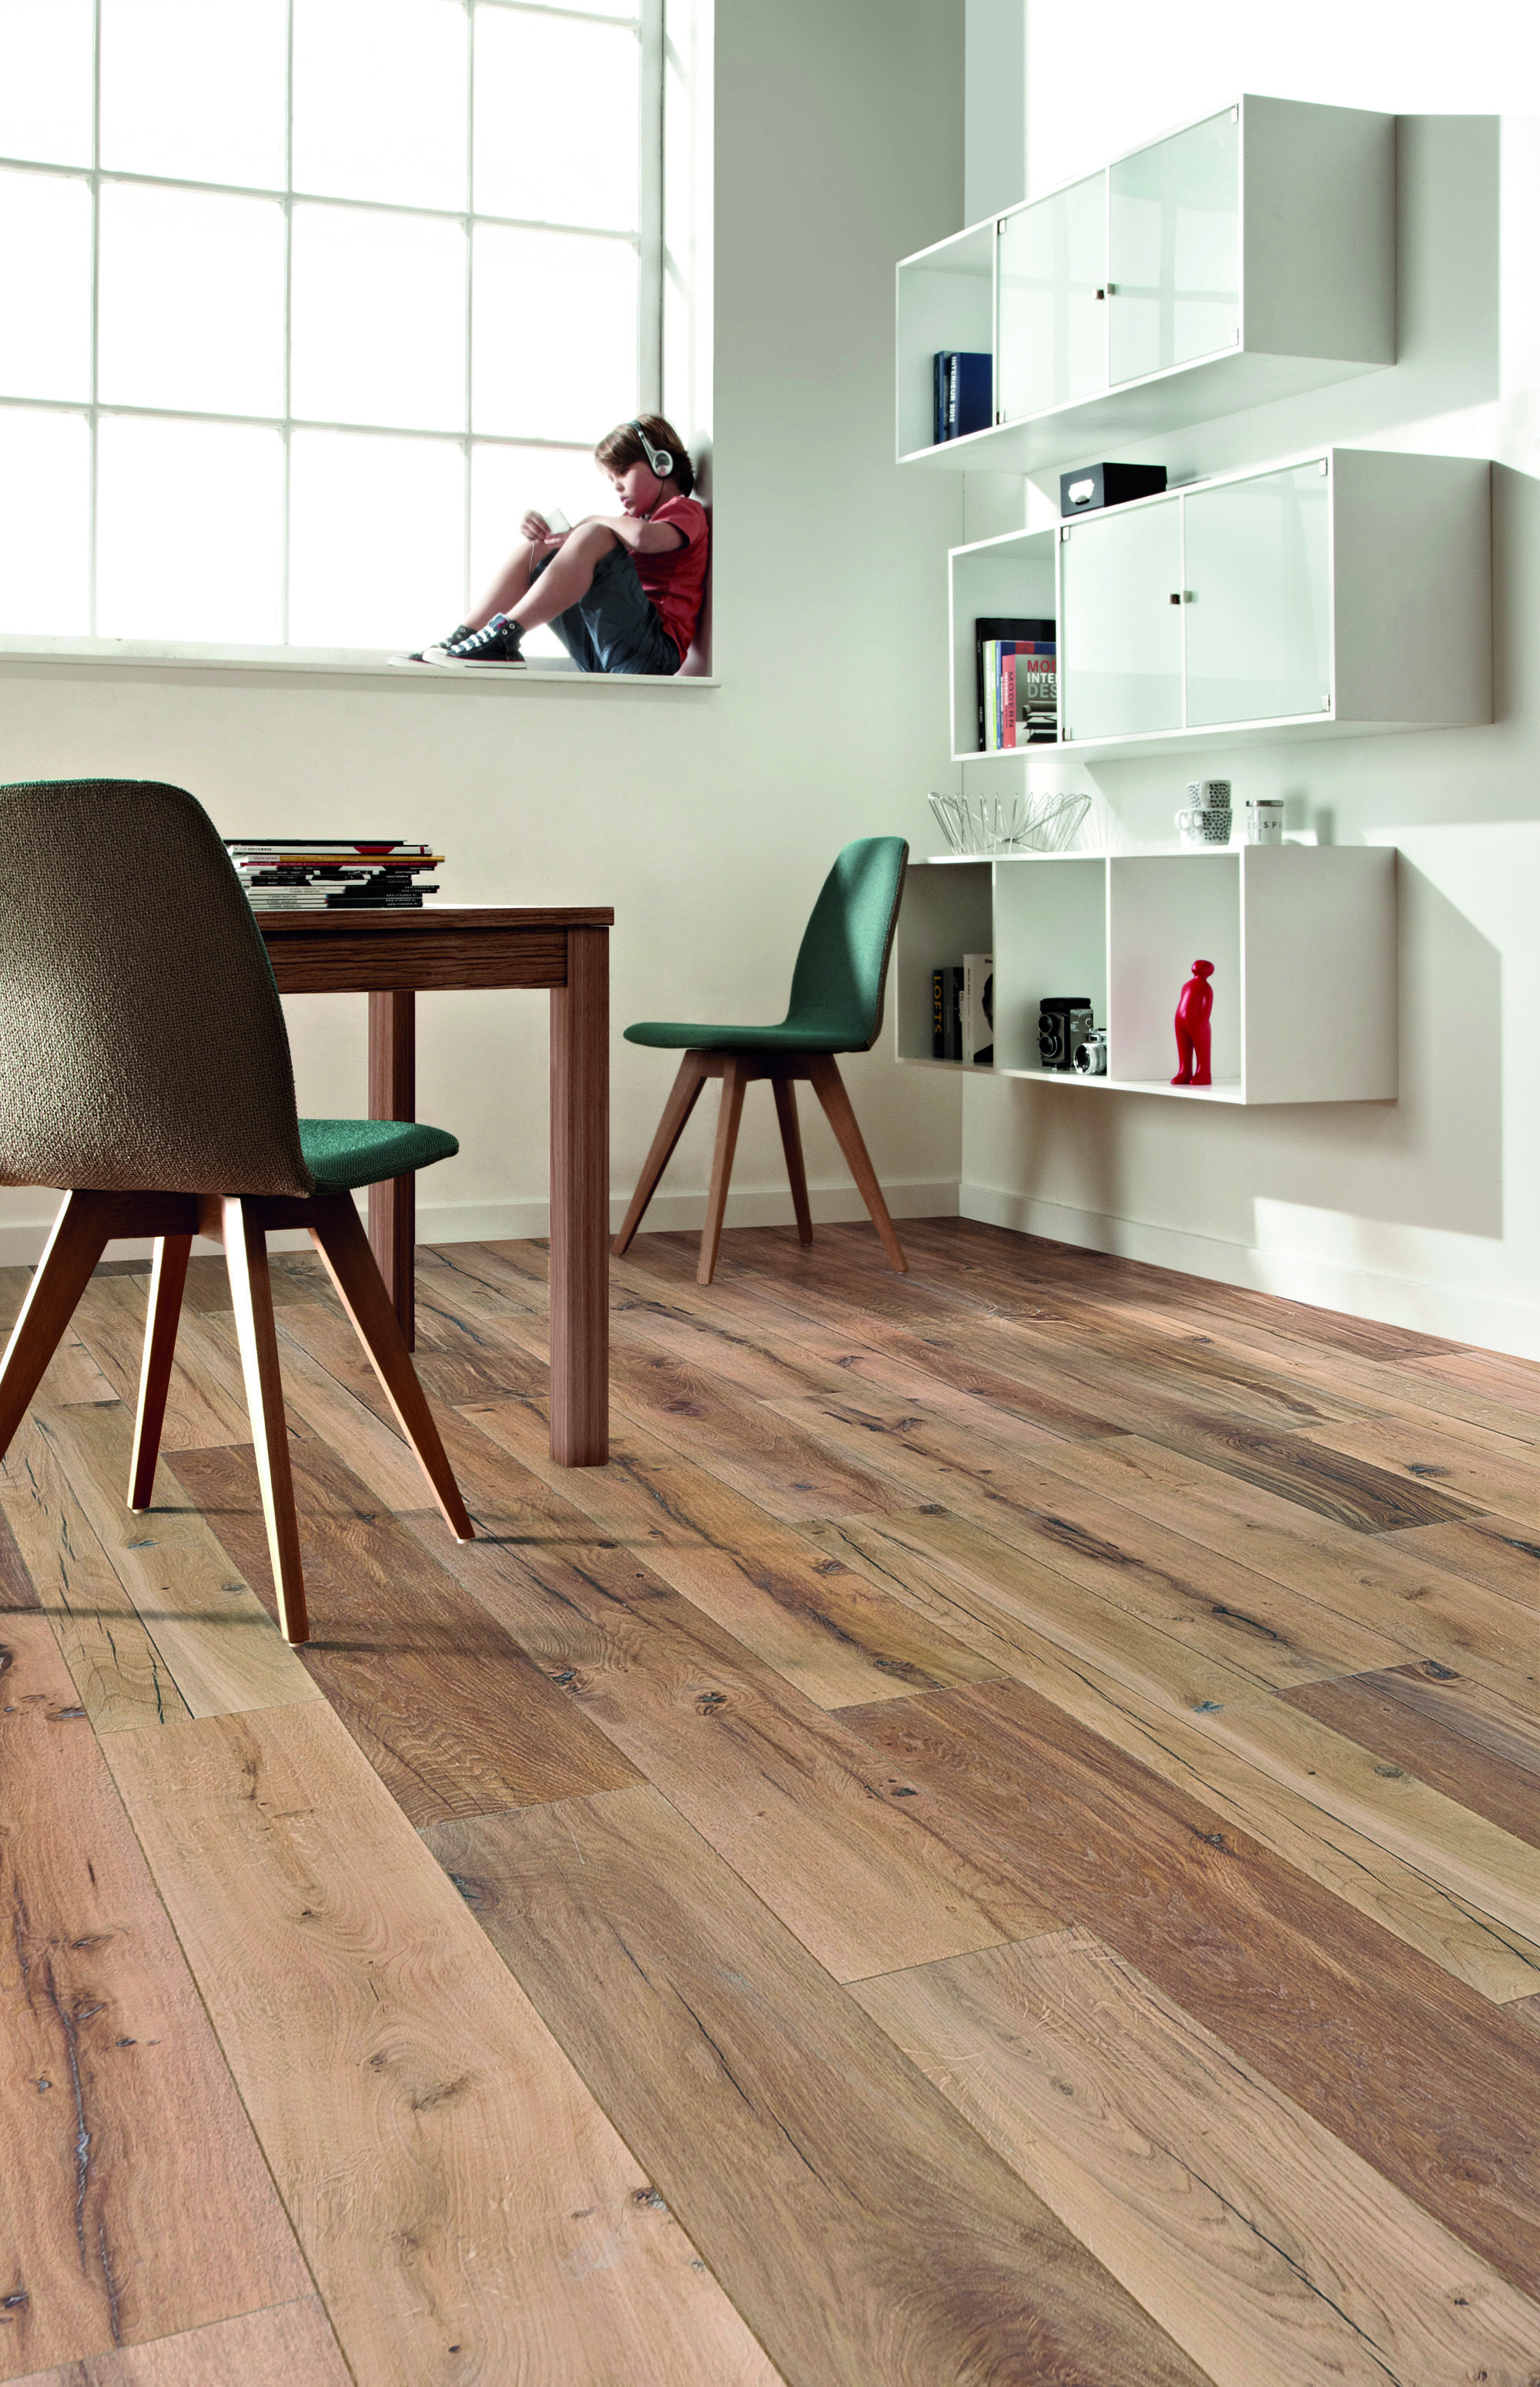 This Vinyl Plank Flooring Looks Good And Is Very Hard Wearing And Eco Friendly Woodflooring Vinyl Plank Flooring Best Vinyl Flooring Vinyl Flooring